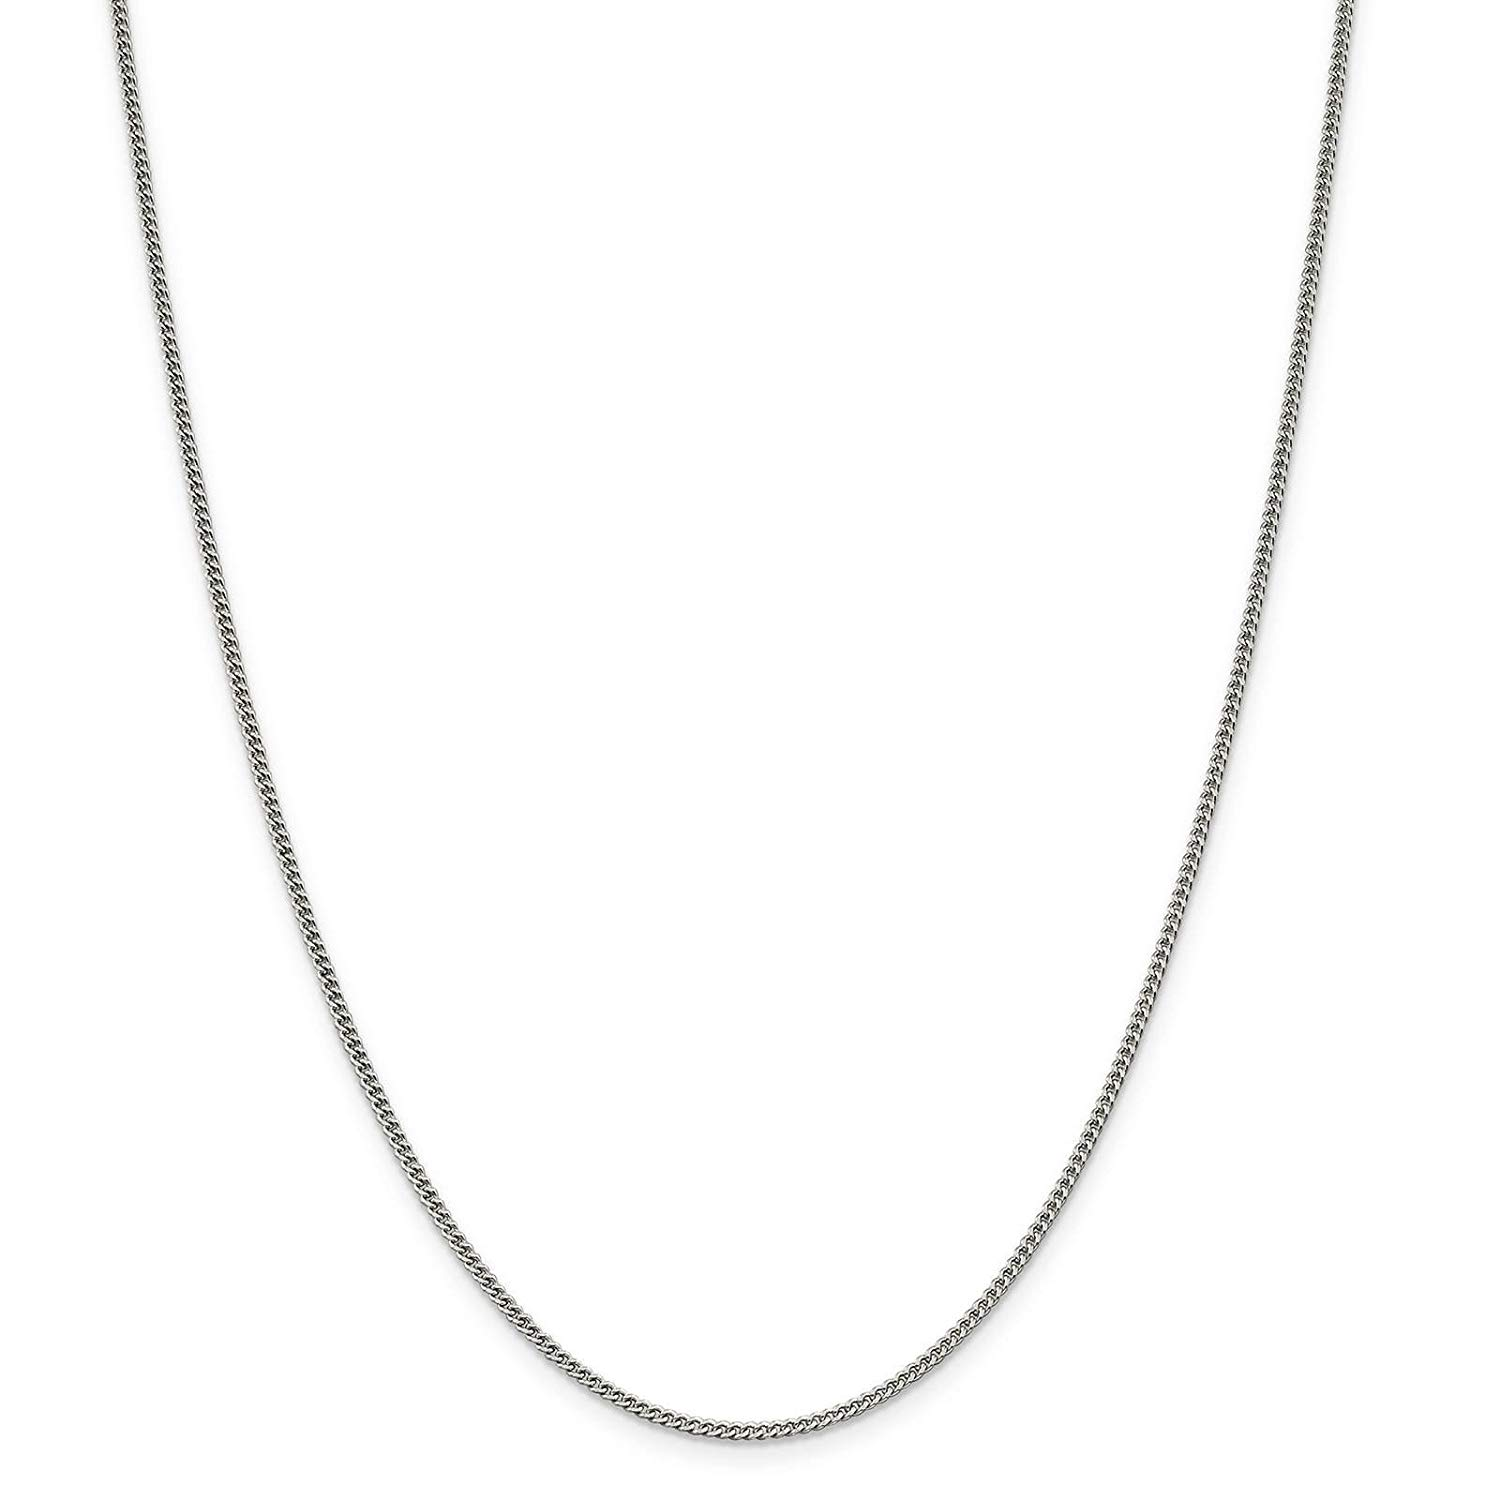 b5c9a2745e6 Get Quotations · 925 Sterling Silver Solid 1.7mm Polished Curb Link Chain  Necklace 7